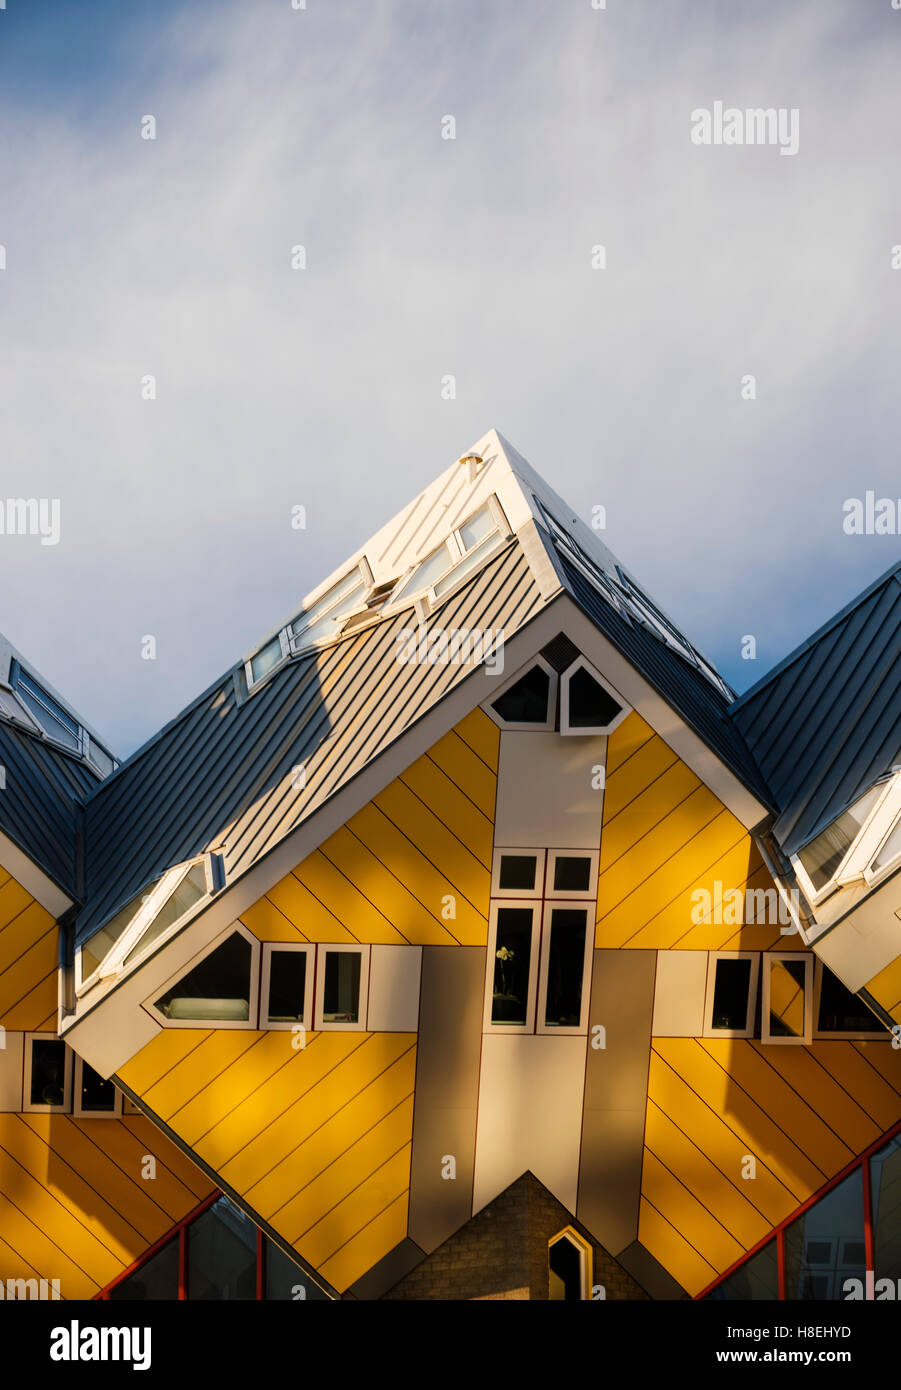 Blaakse Bos, Cube Houses, Oudehaven, Rotterdam, Netherlands, Europe - Stock Image